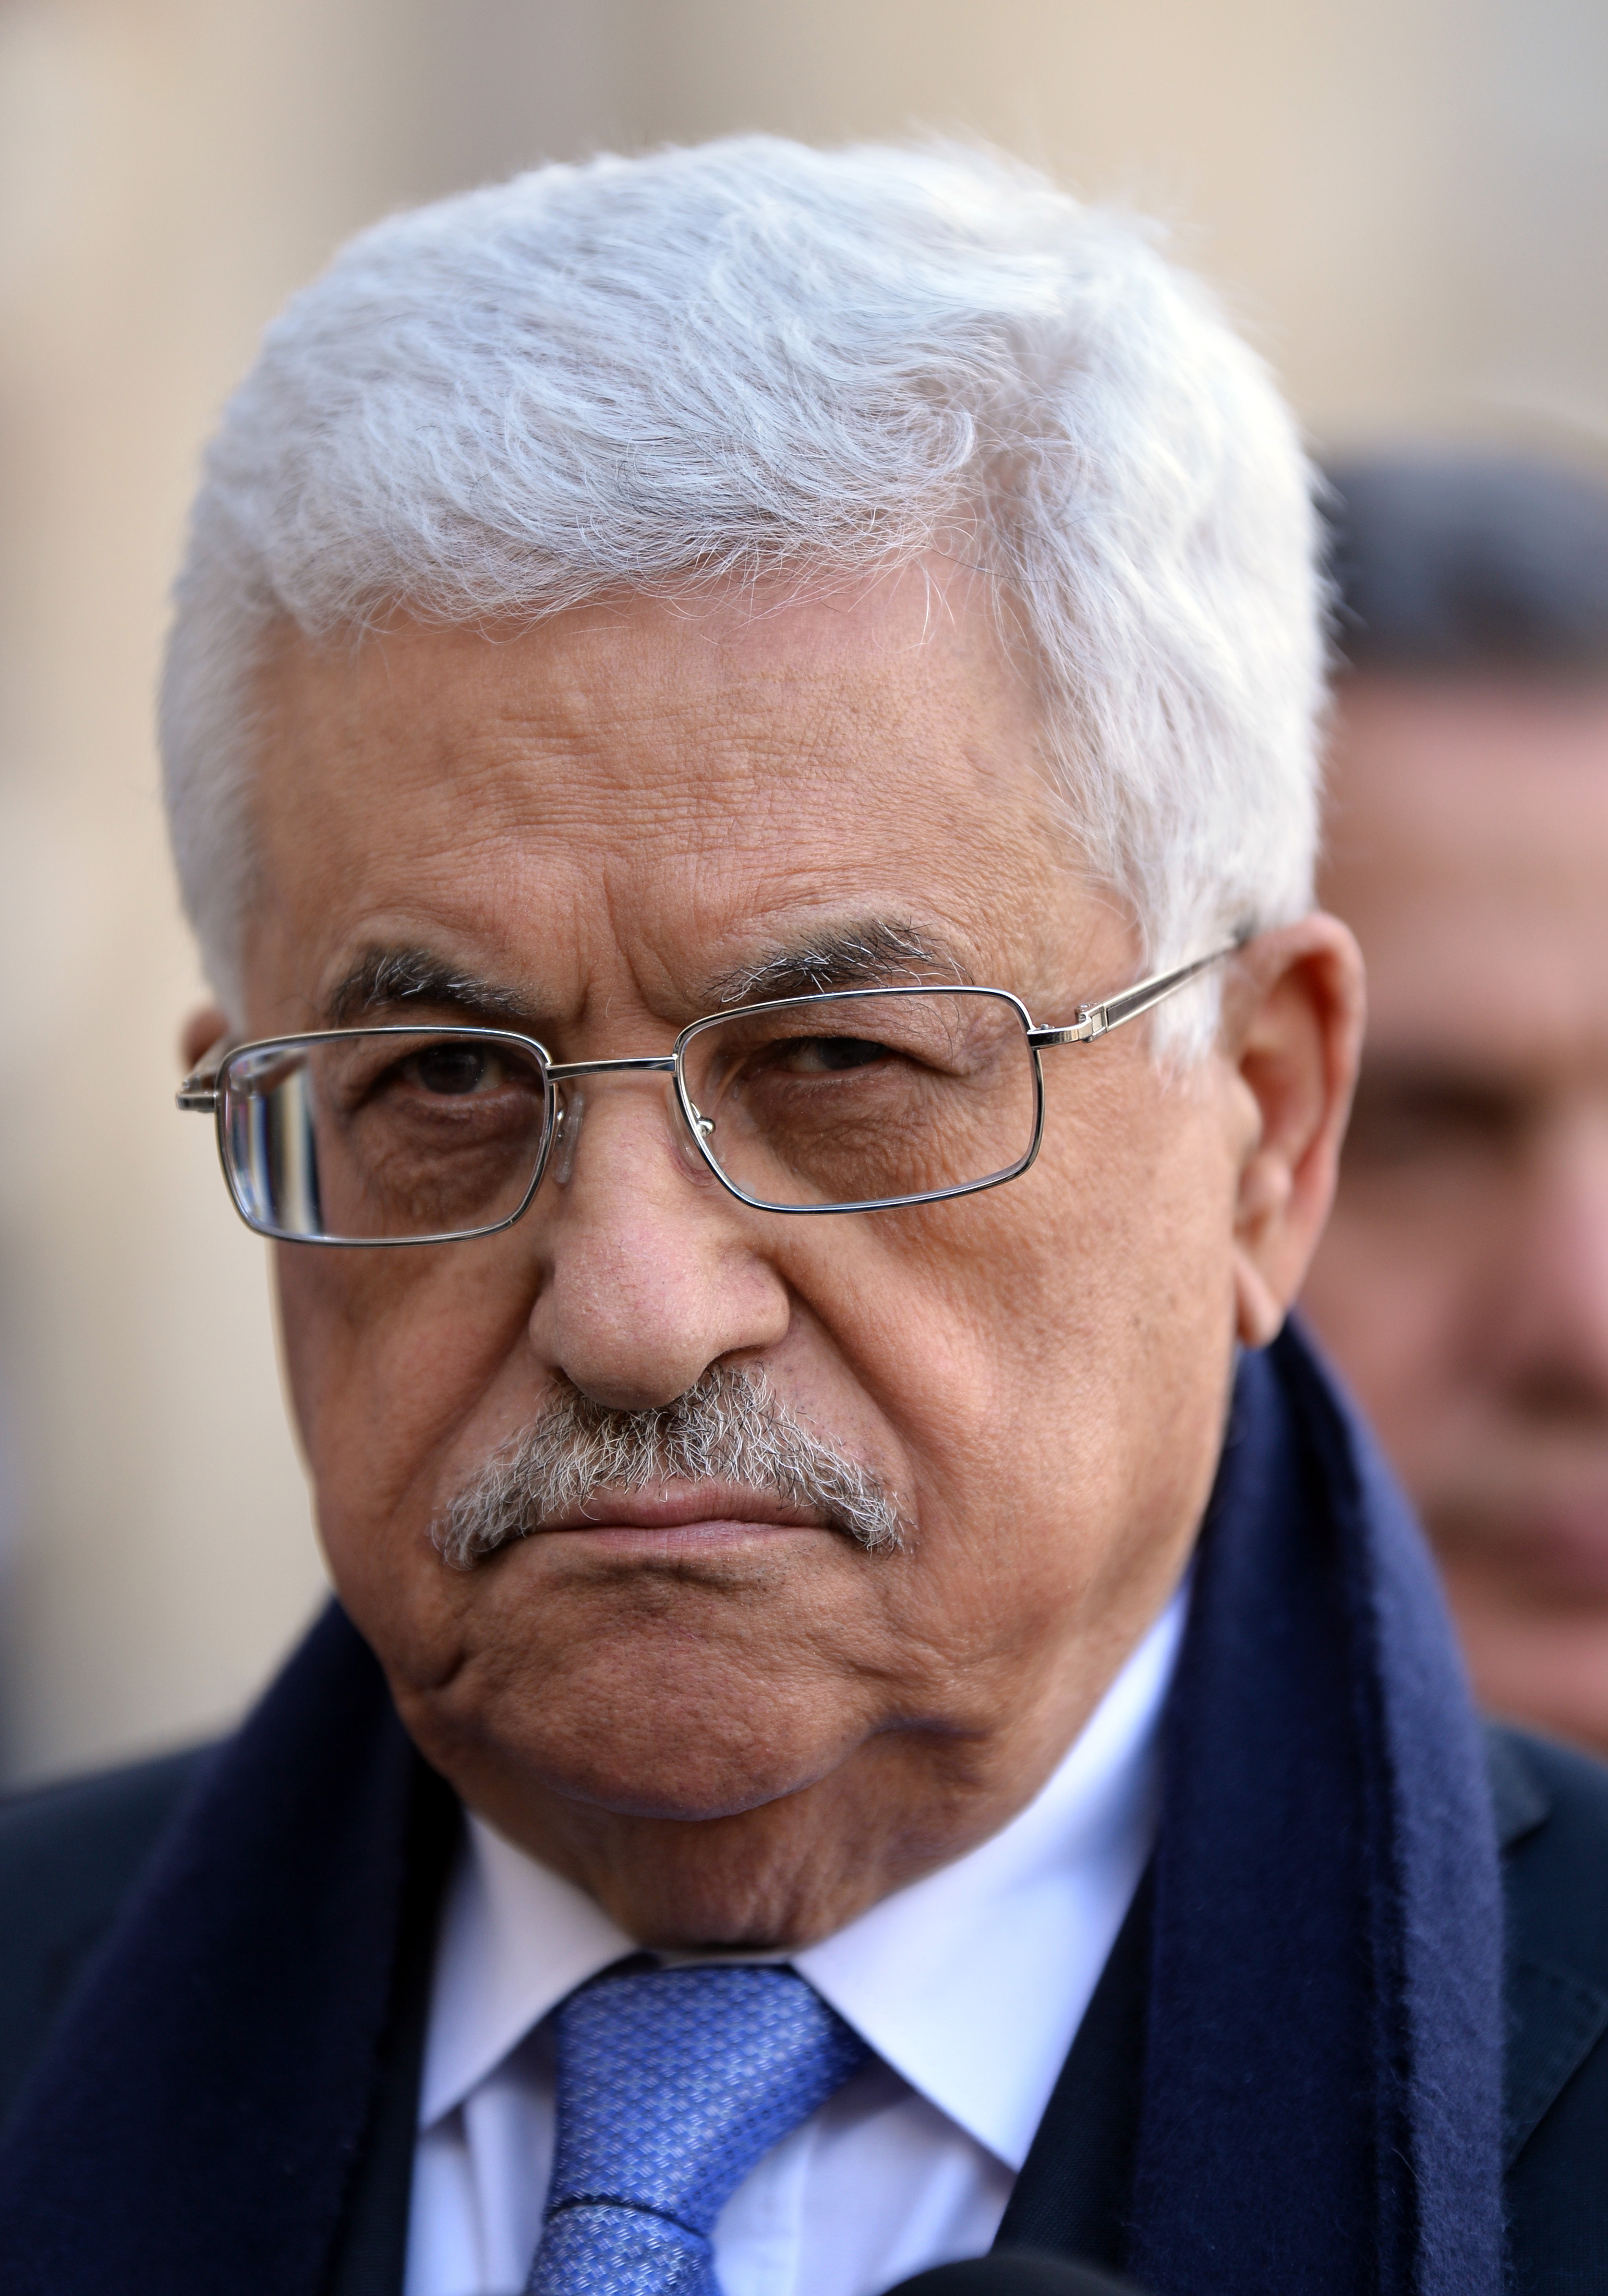 Palestinian Authority President Mahmoud Abbas at the Elysee Palace in Paris, France, on February 21, 2014.